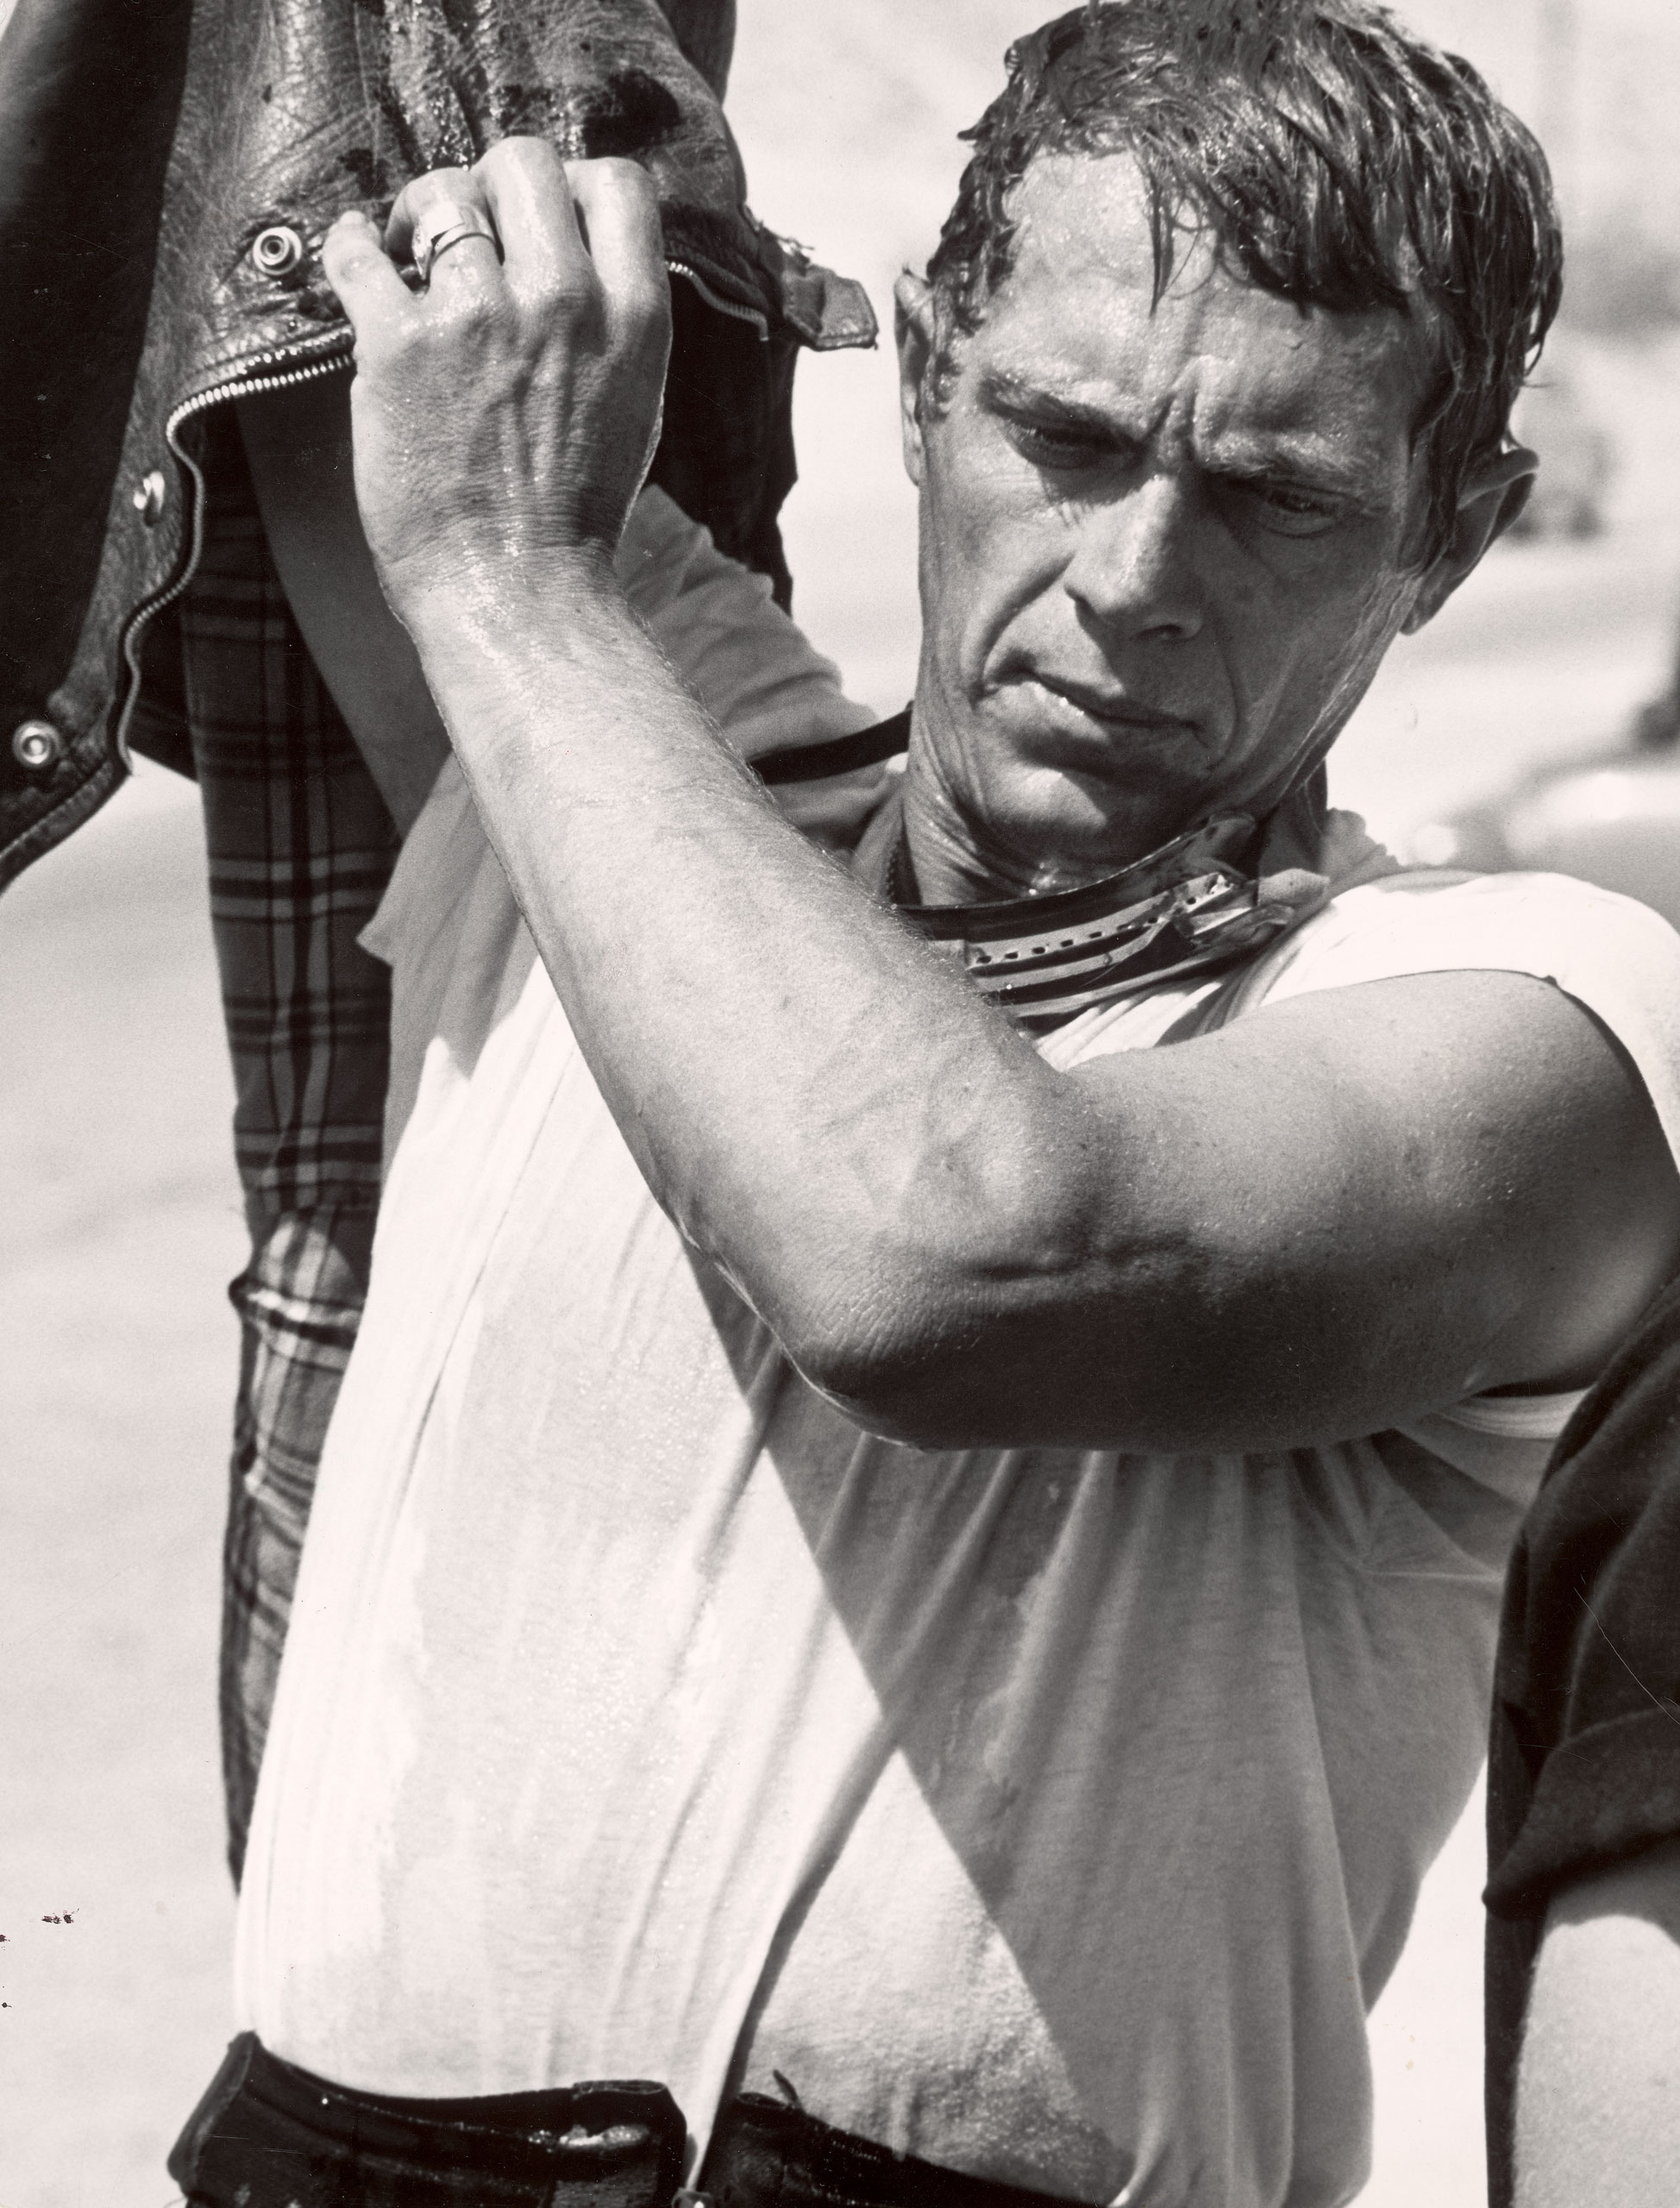 Steve McQueen, who was nominated once. Pictured here during motorcycle racing across the Mojave Desert, 1963.